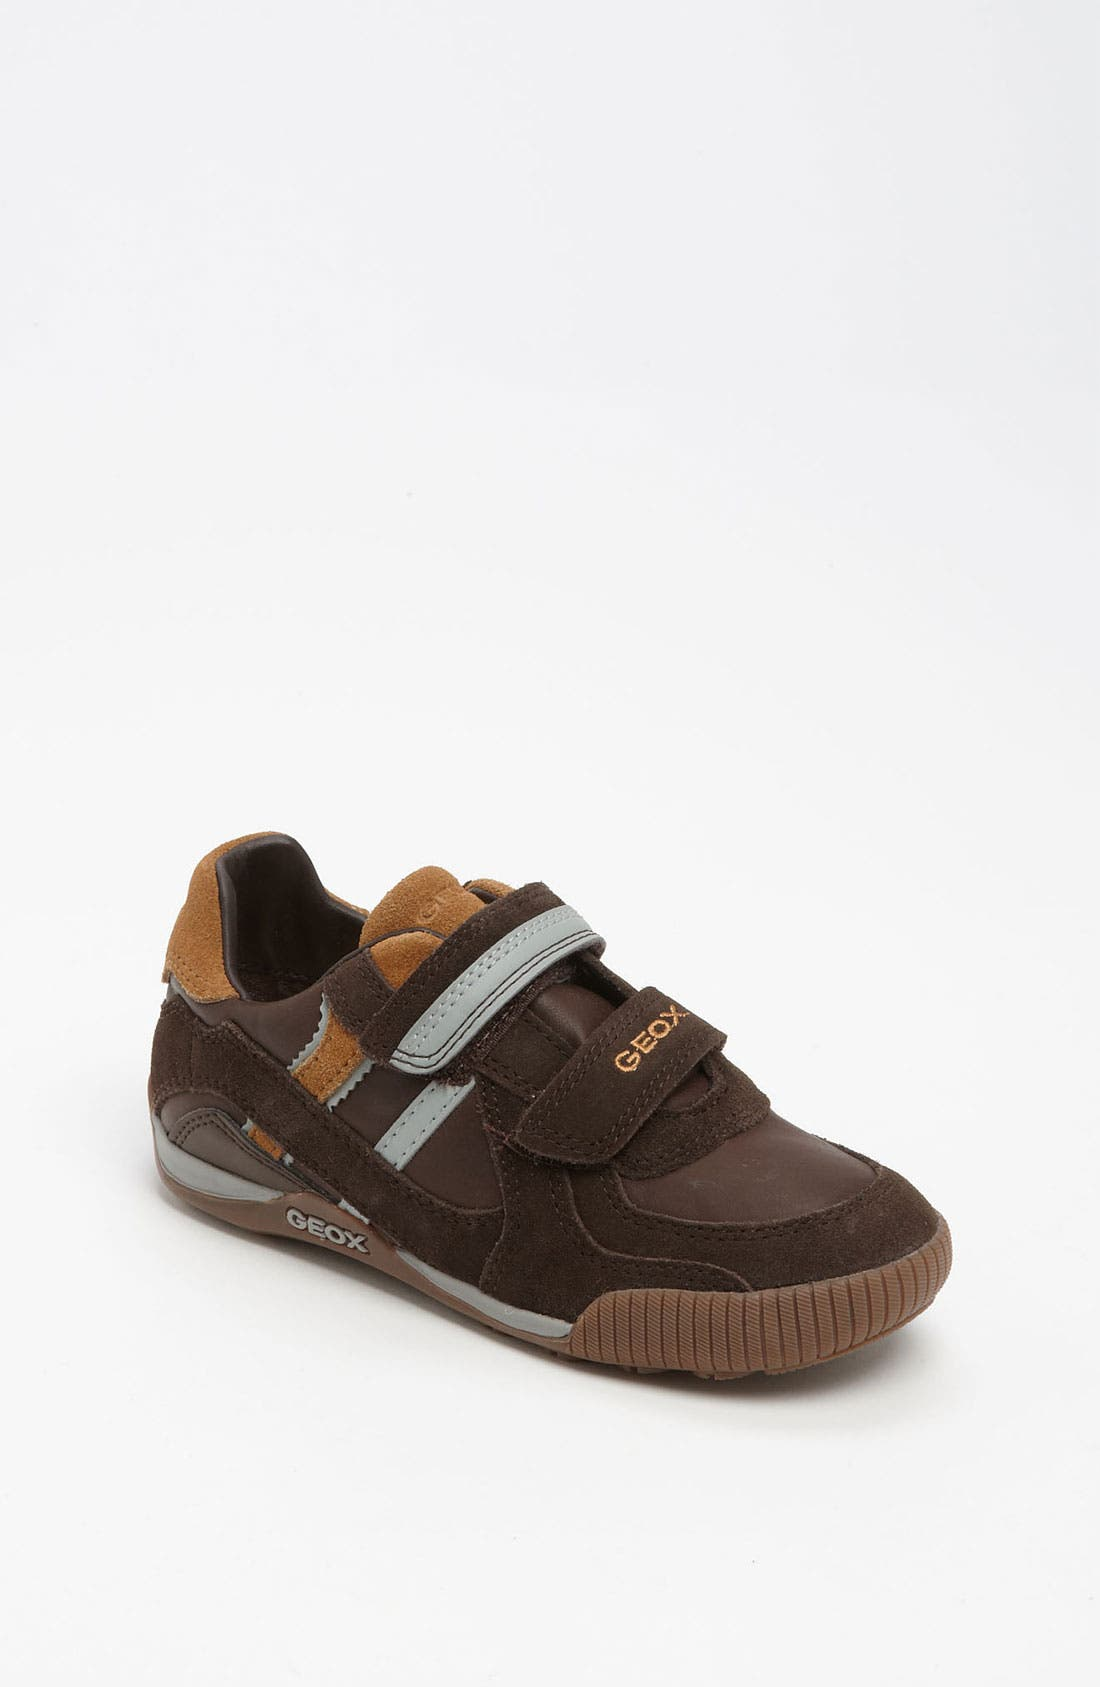 Main Image - Geox 'Olimpus' Sneaker (Toddler, Little Kid & Big Kid)